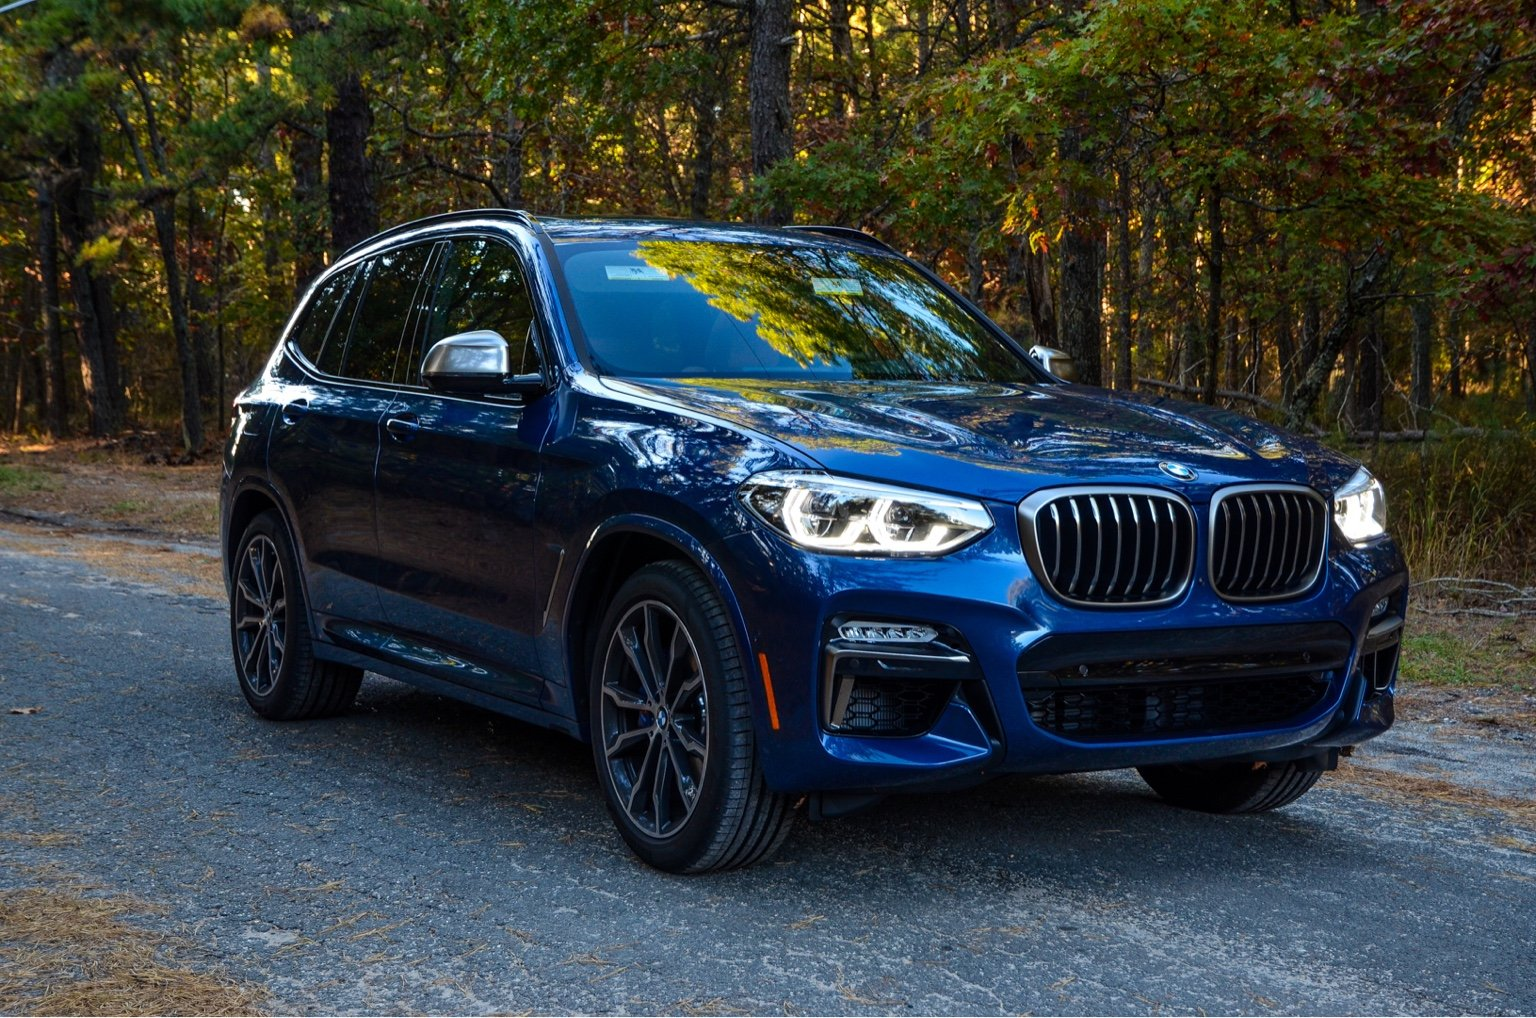 bmw x3 m40i opinion bimmerfest bmw forums. Black Bedroom Furniture Sets. Home Design Ideas